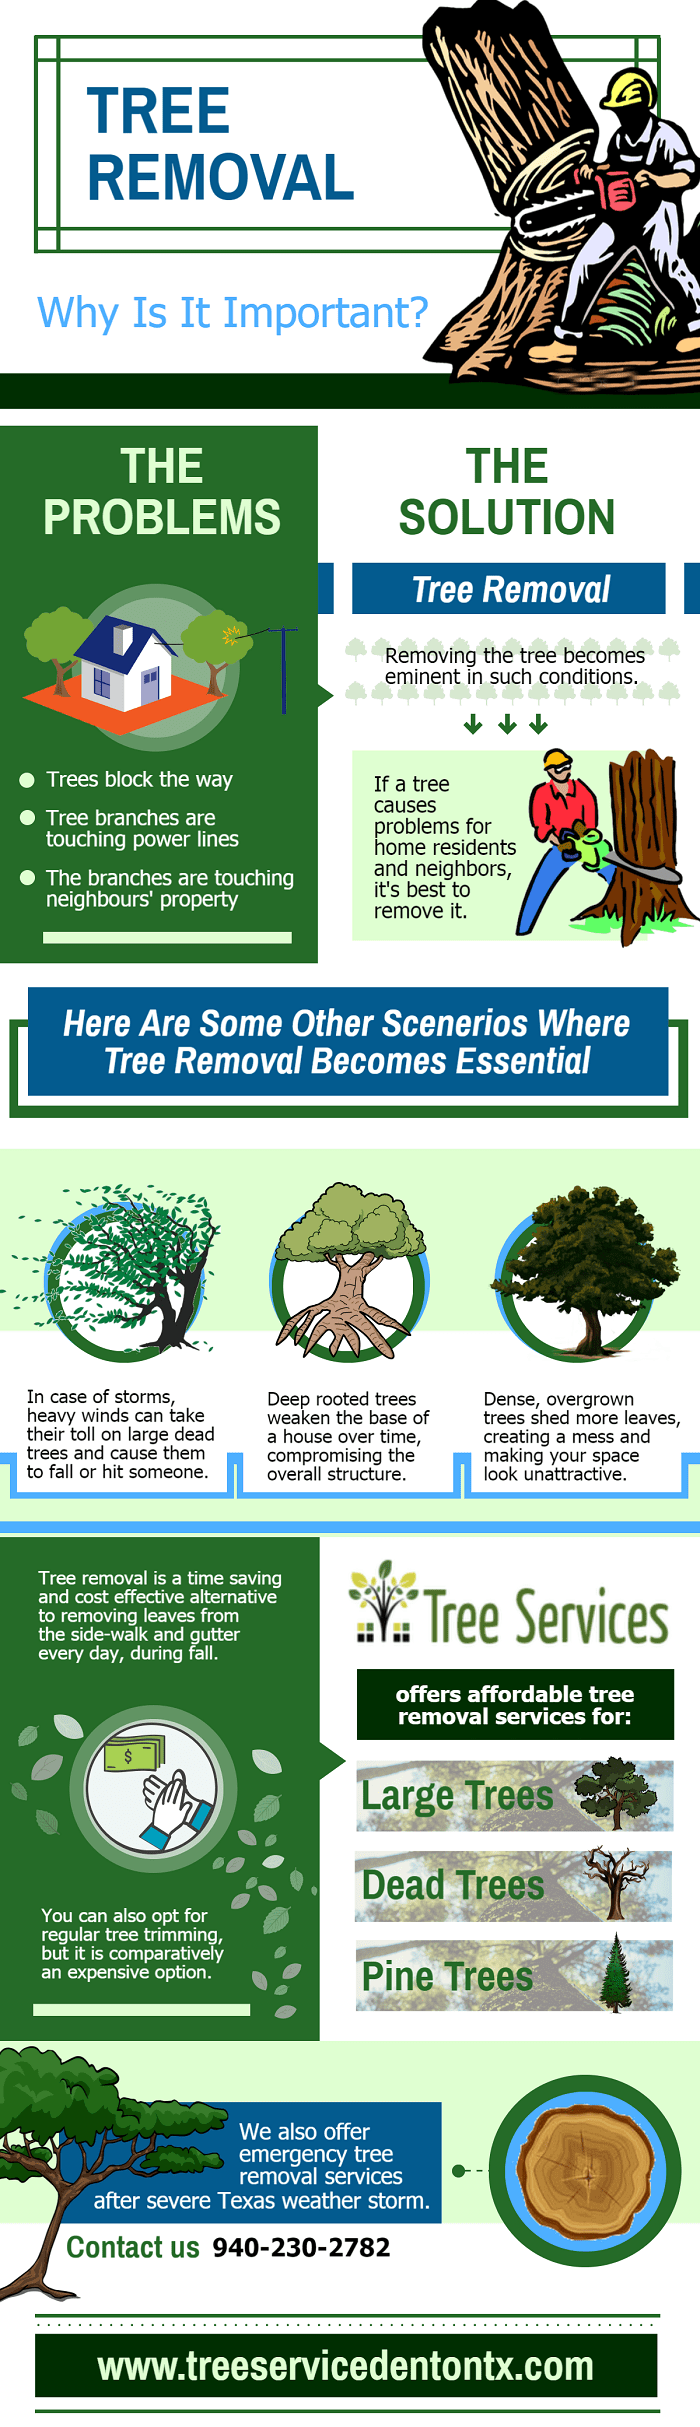 Tree Removal – Why is it Important?